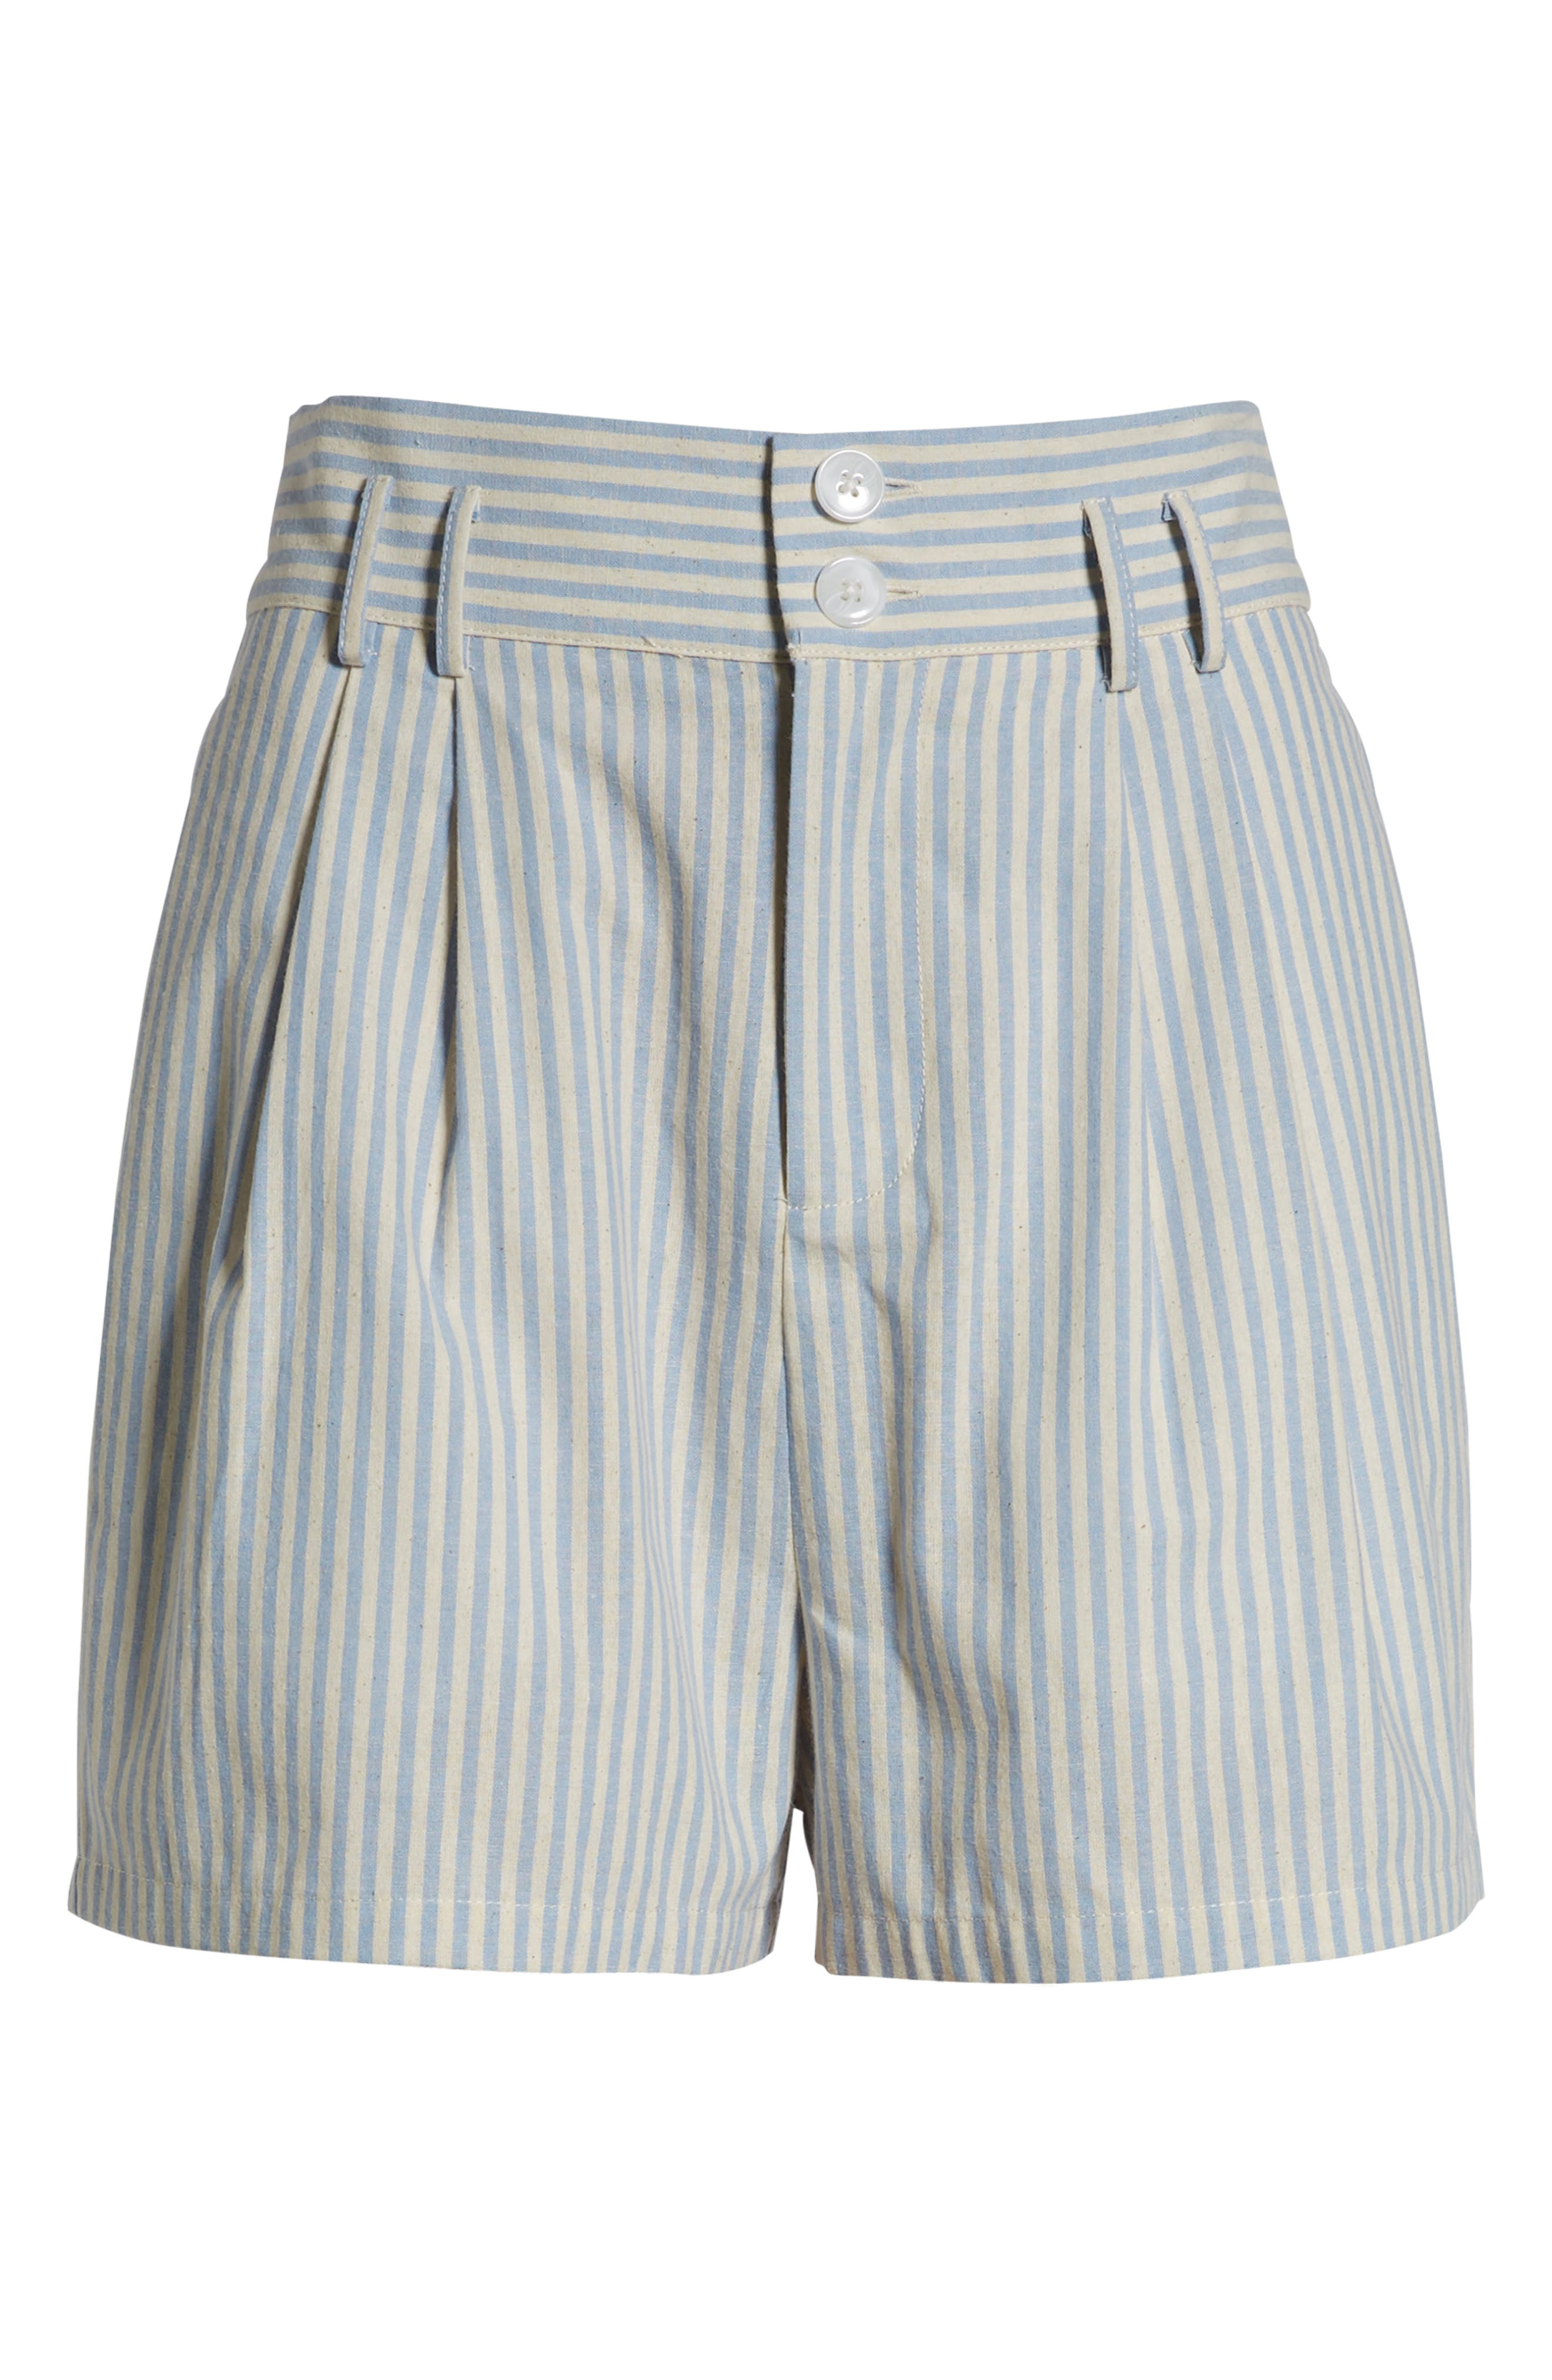 Striped Bermuda Shorts,                             Alternate thumbnail 6, color,                             BLUE